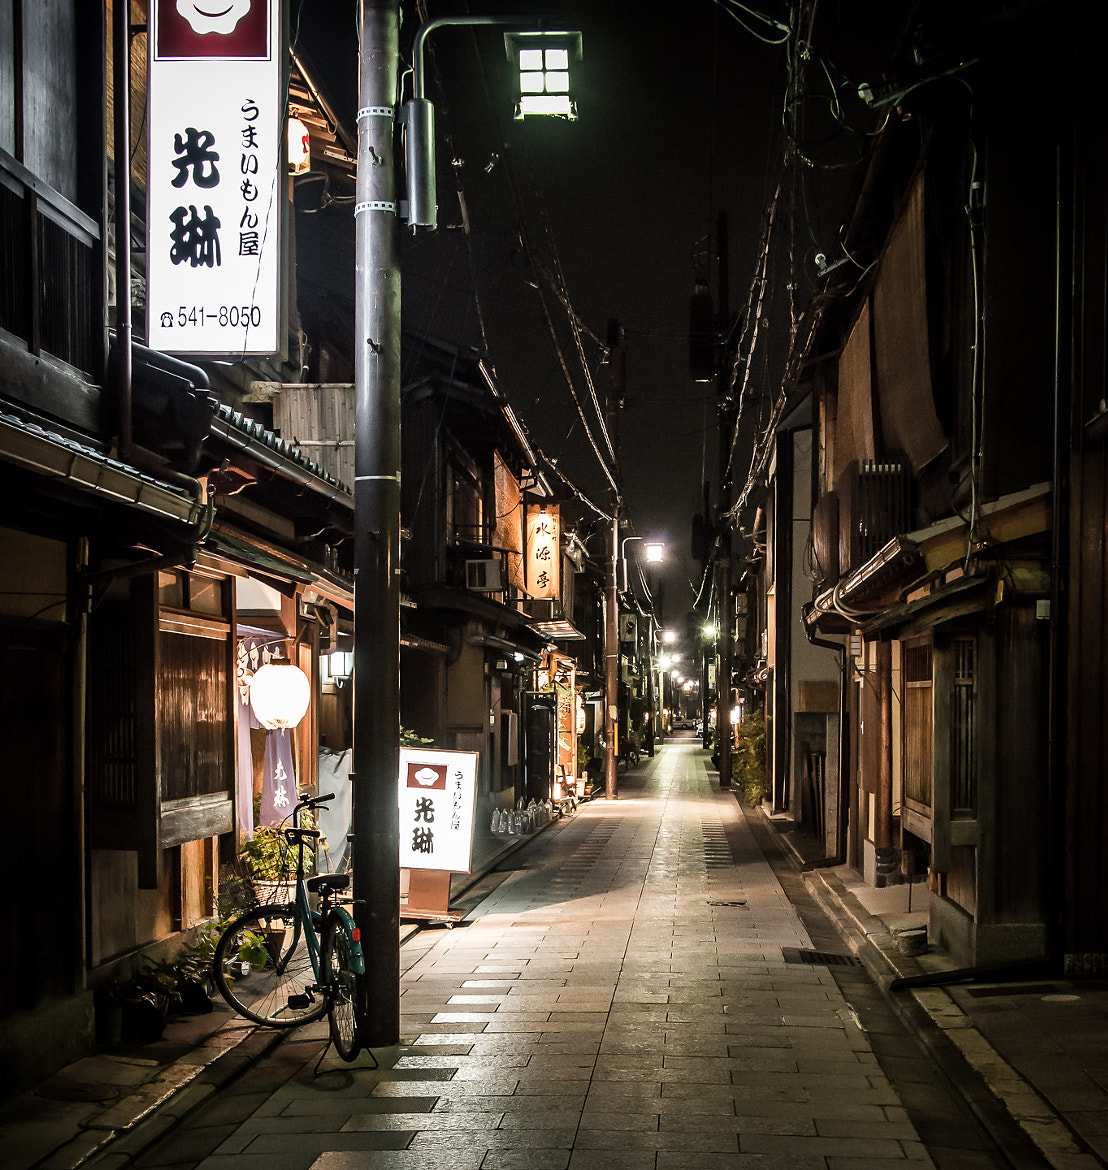 Photograph Night Kyoto by Vsevolod Berris on 500px